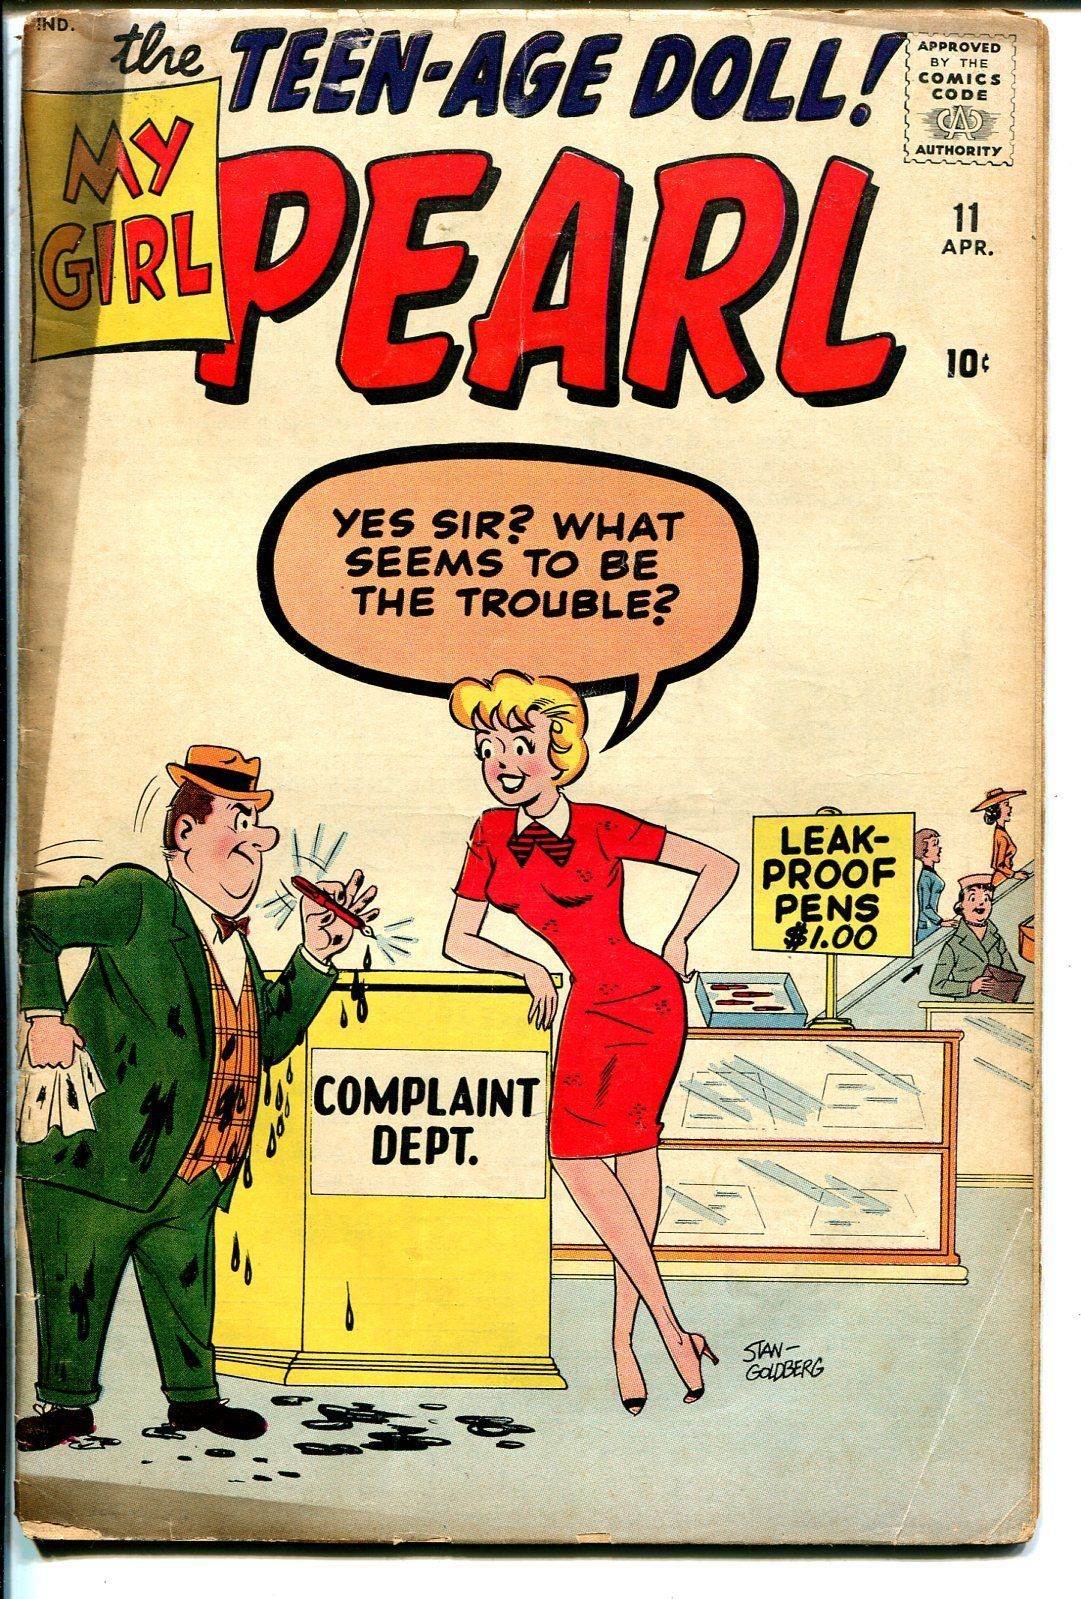 My Girl Pearl #8 1961-Marvel-Stan Goldberg-Good Girl Art-VG-